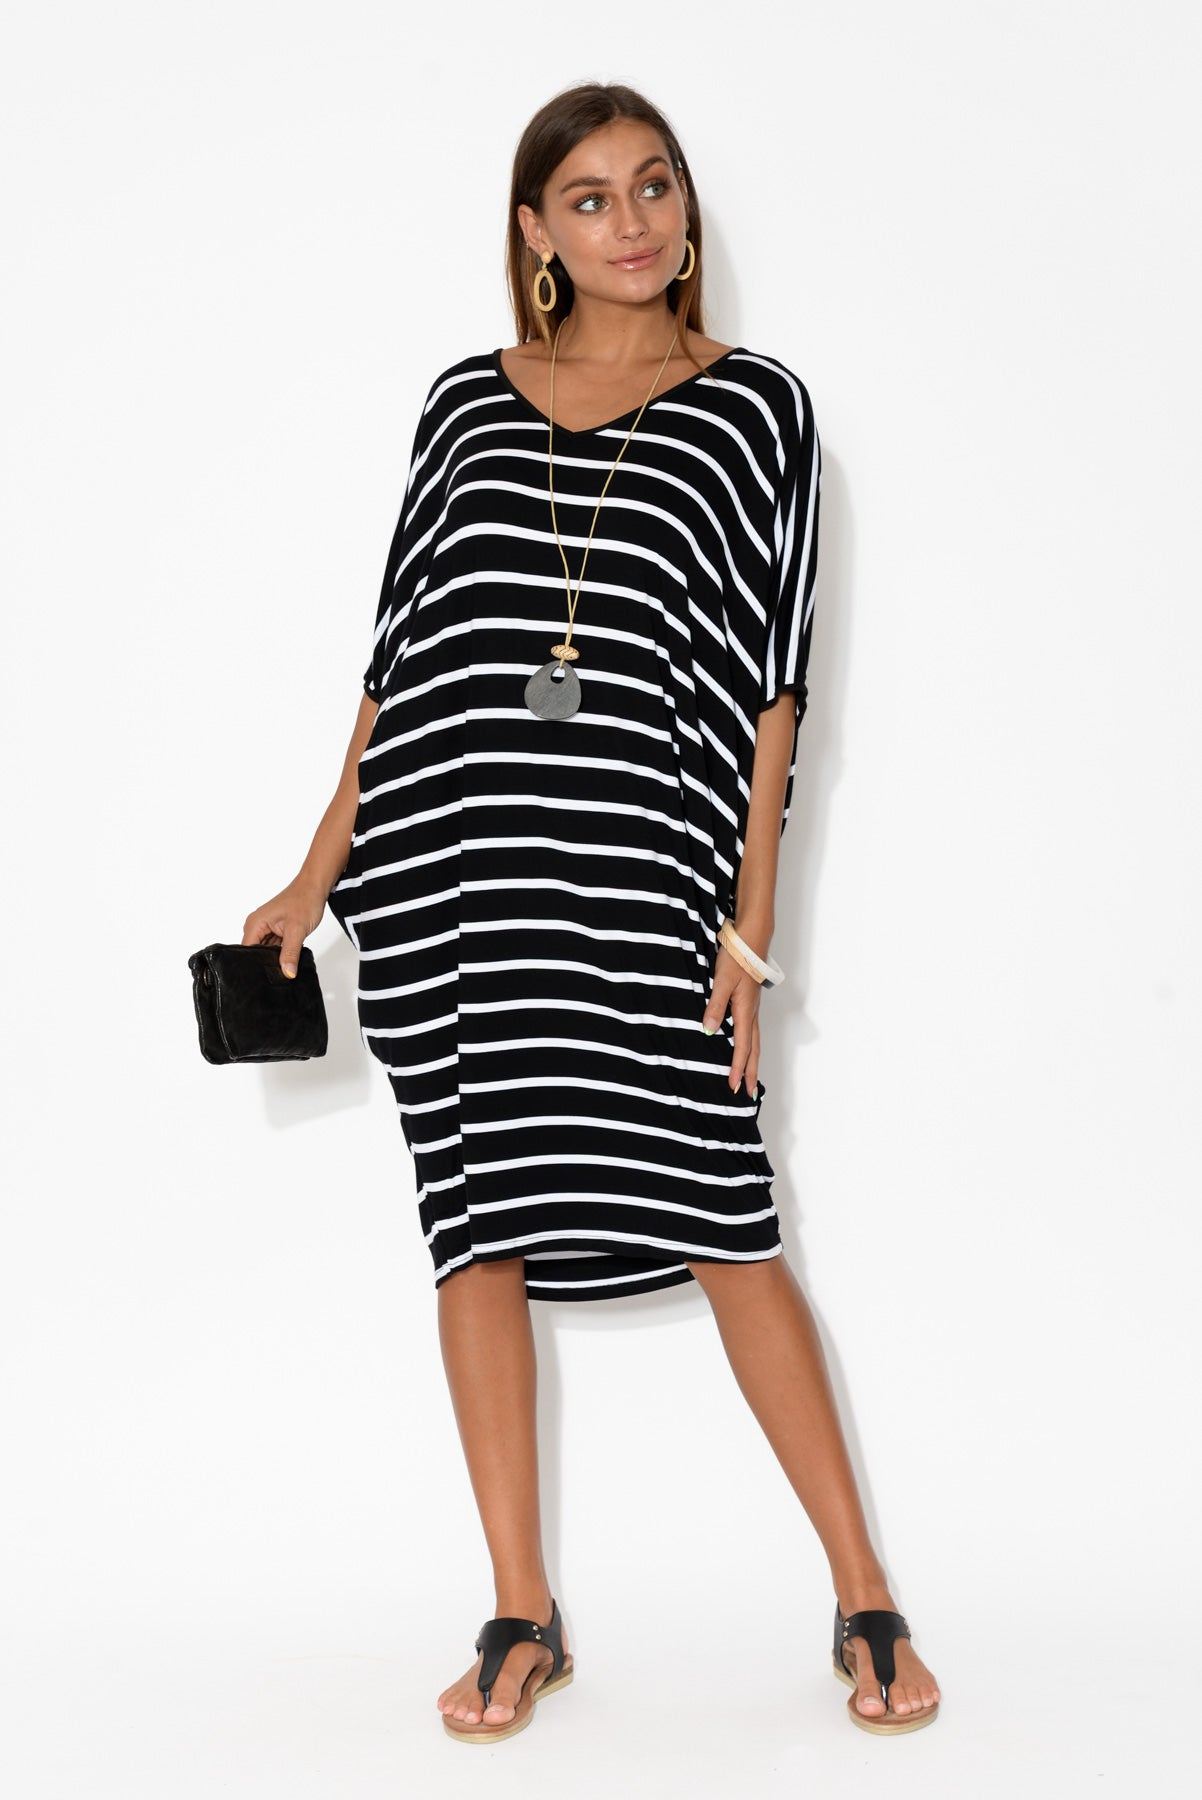 Freya Black Stripe Batwing Dress